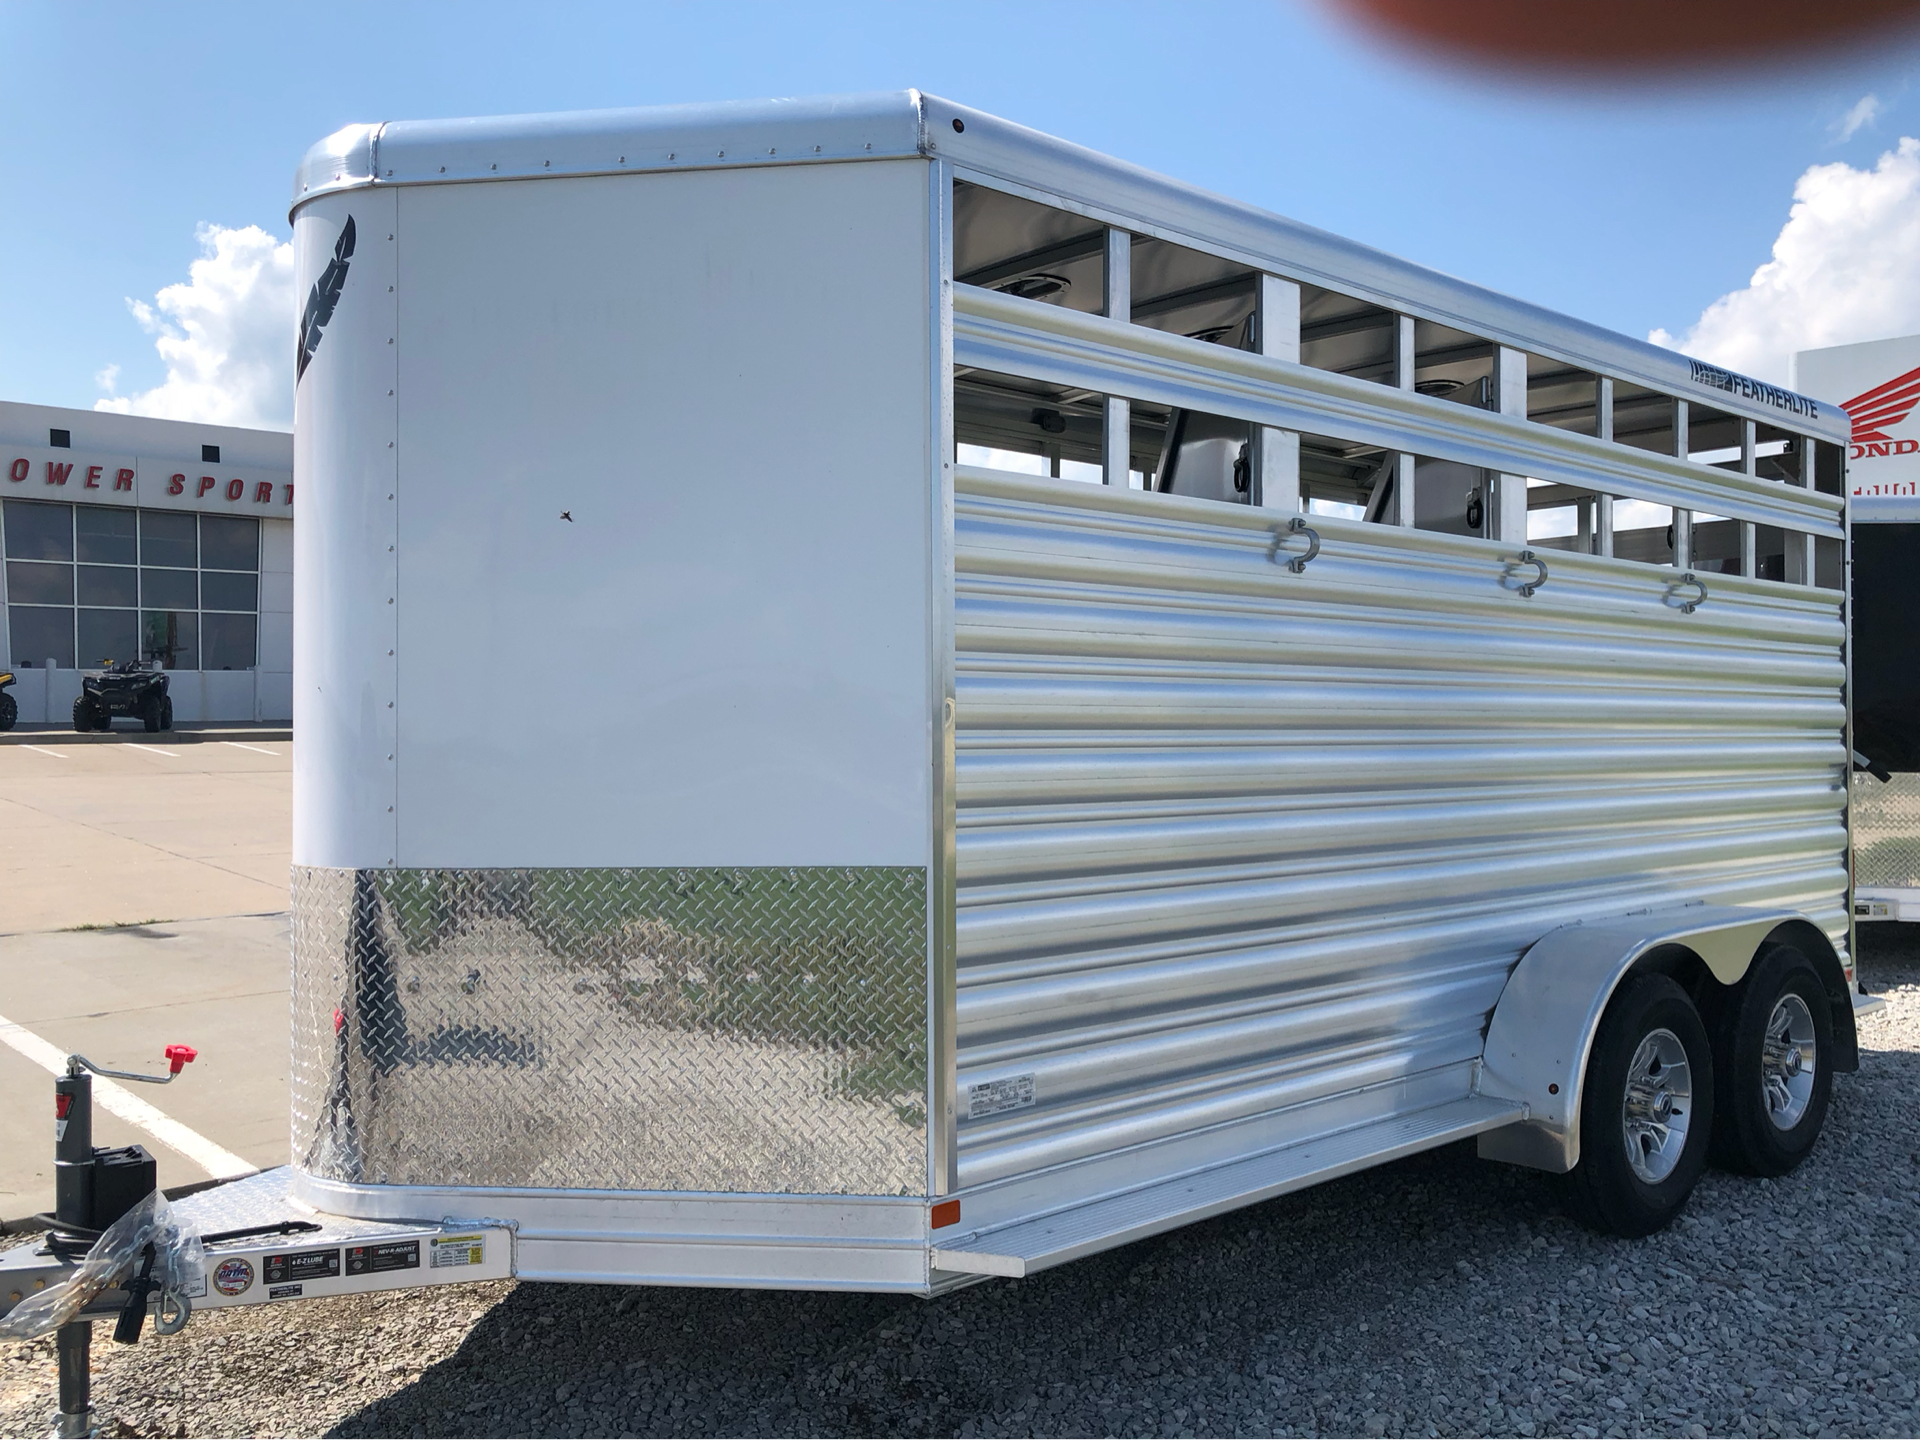 2019 Featherlite Trailers 9651-314b in Roca, Nebraska - Photo 2